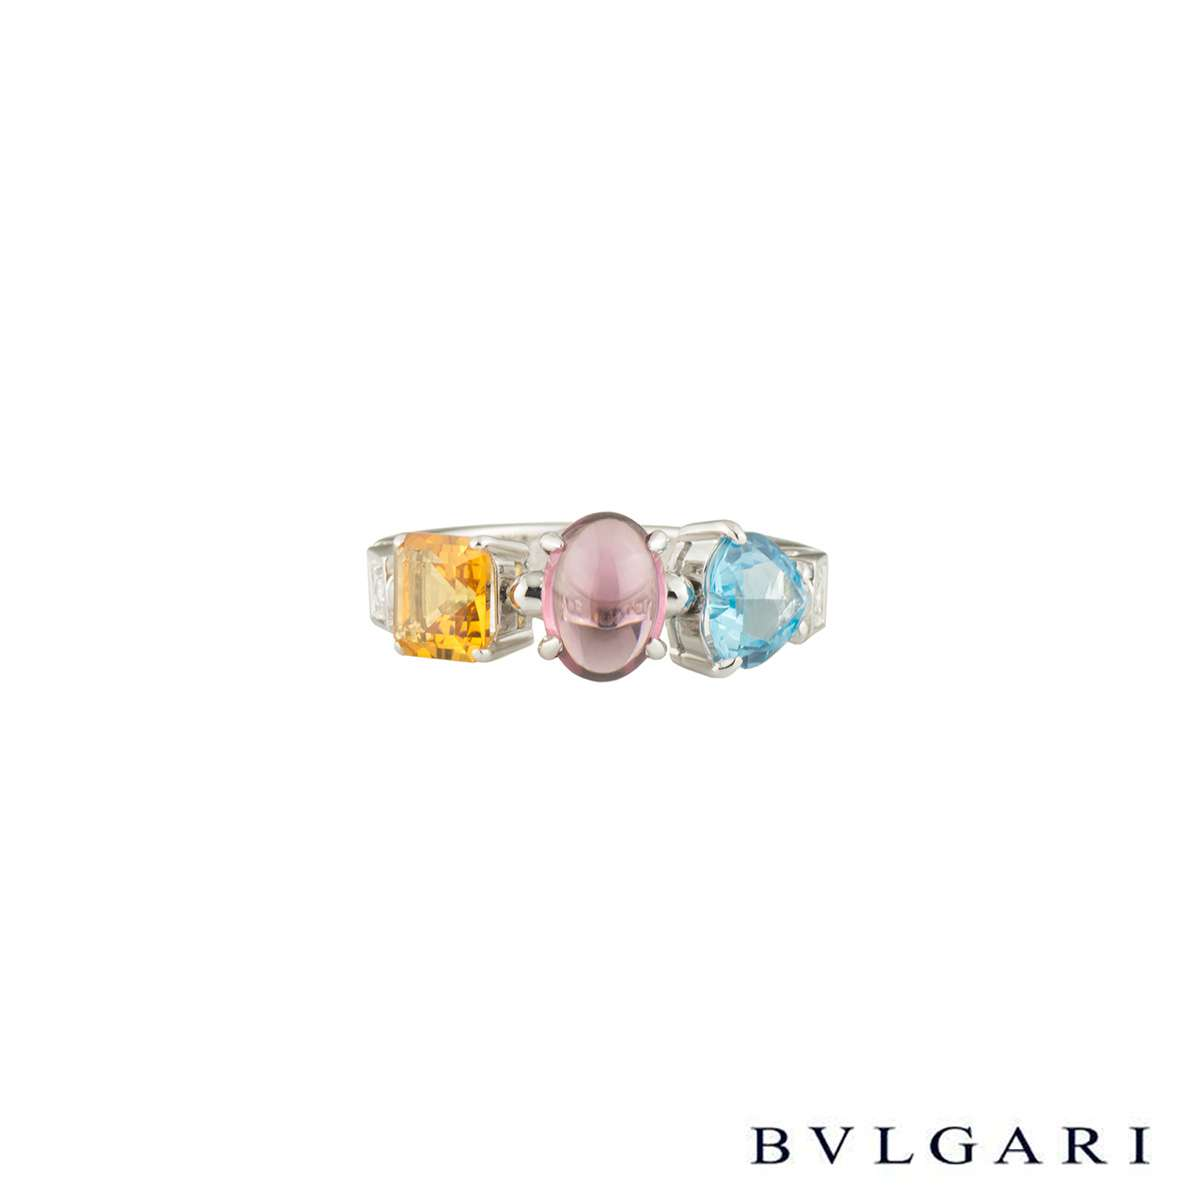 Bvlgari White Gold Multi-Gemstone Allegra Ring